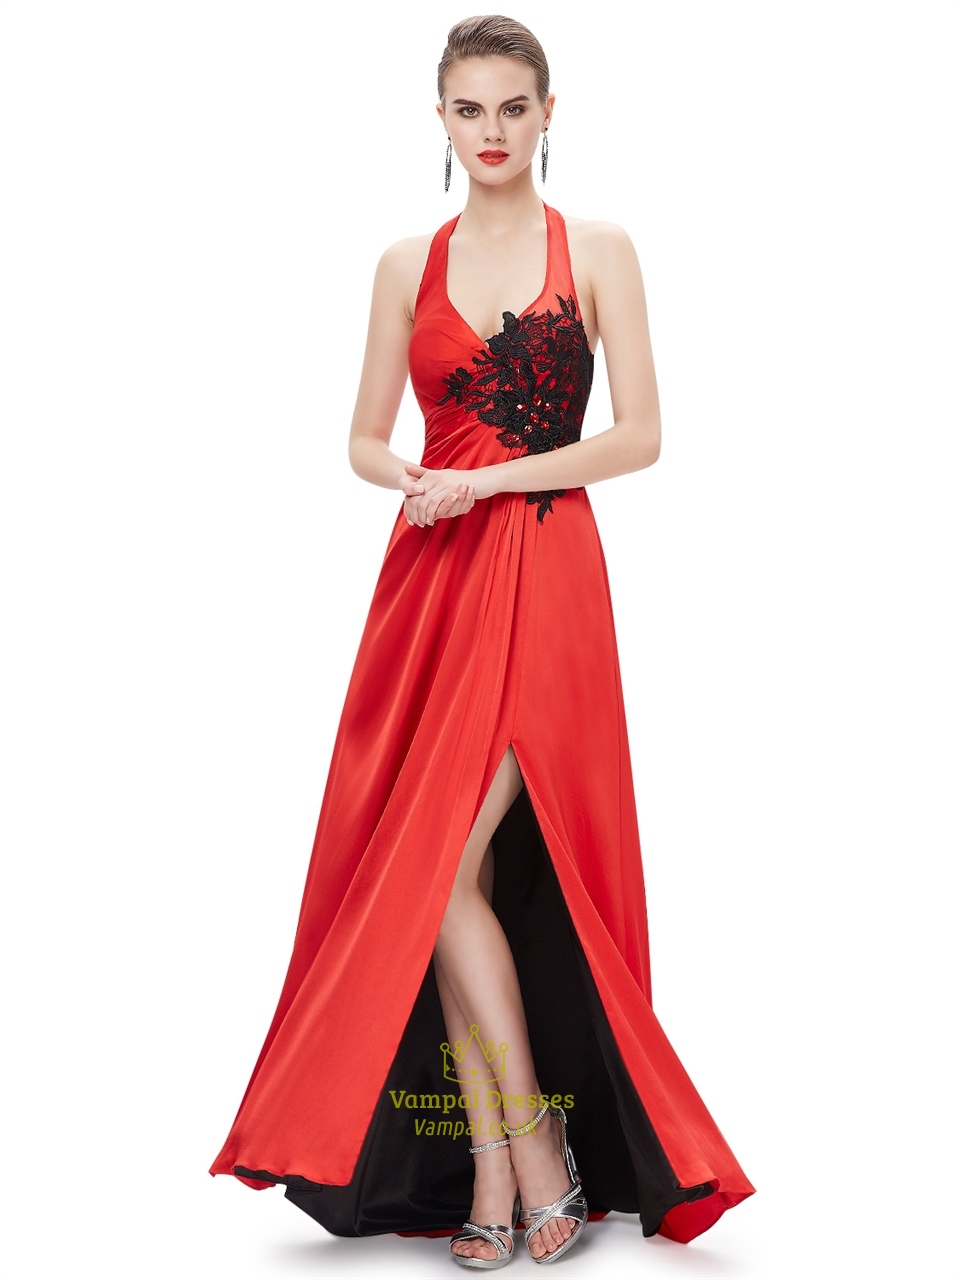 Red Halter Neck Side Slits Prom Dress With Black Lace